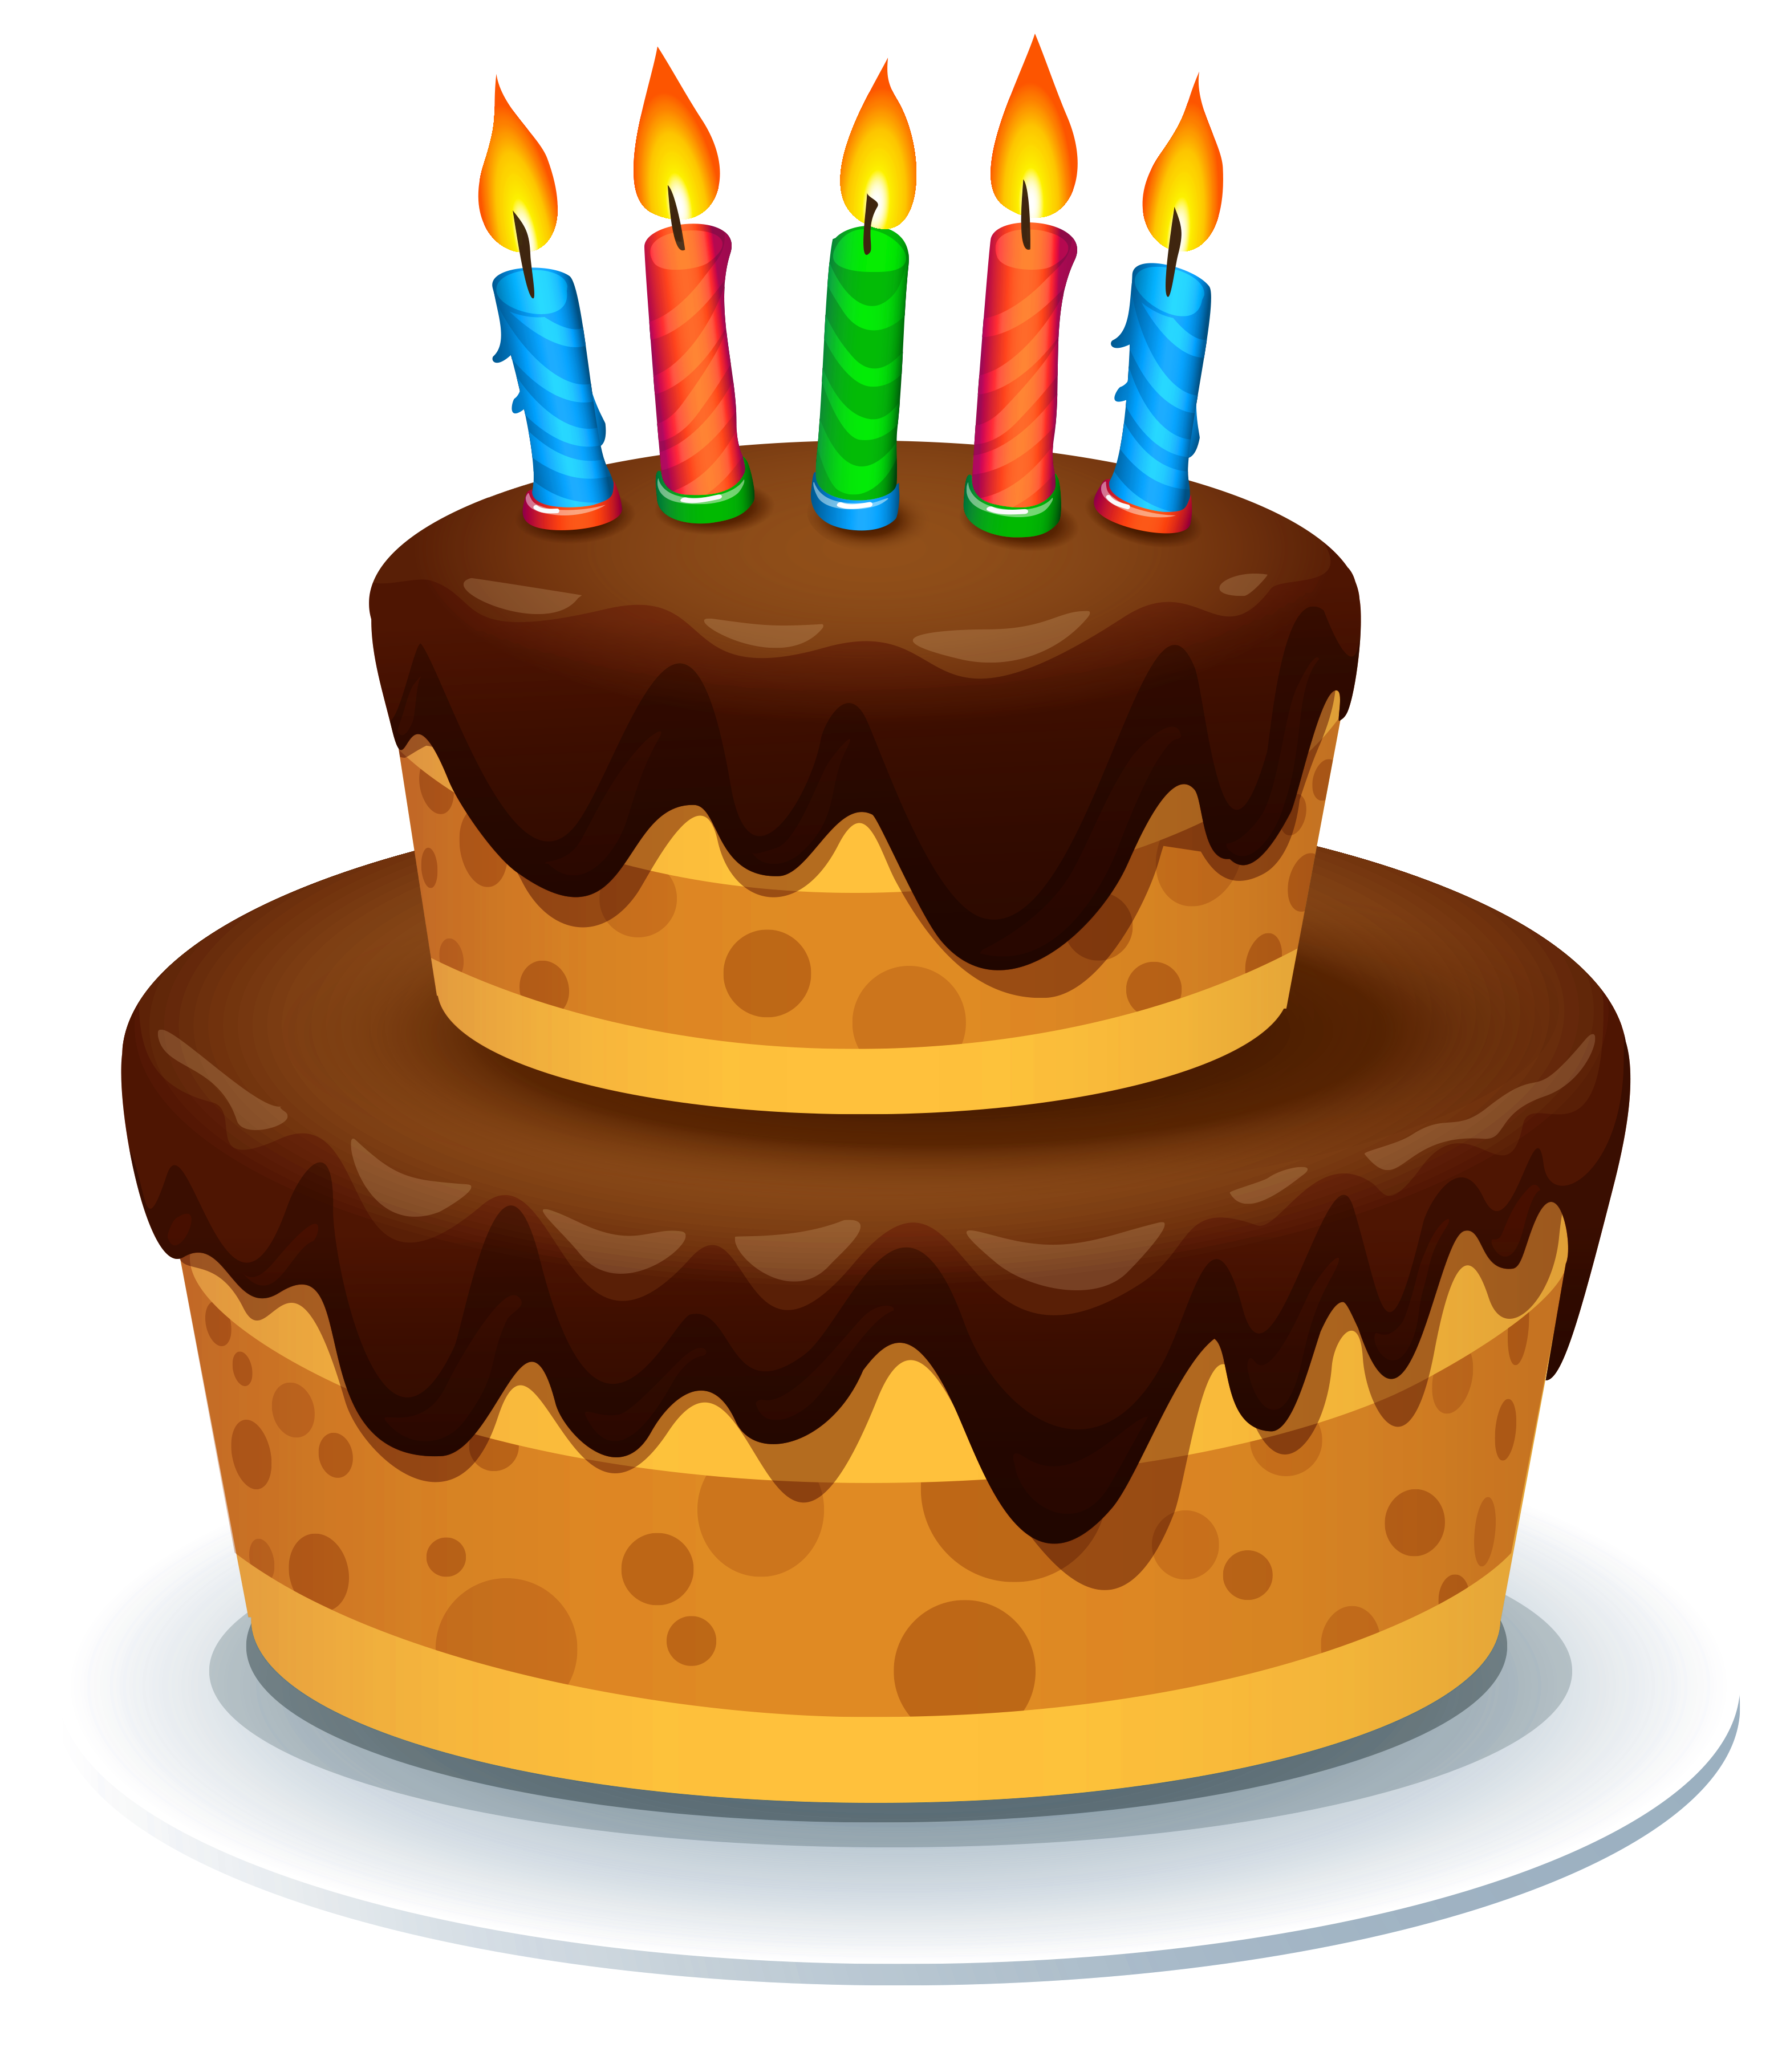 Birthday cake with candles png. Clipart image gallery yopriceville